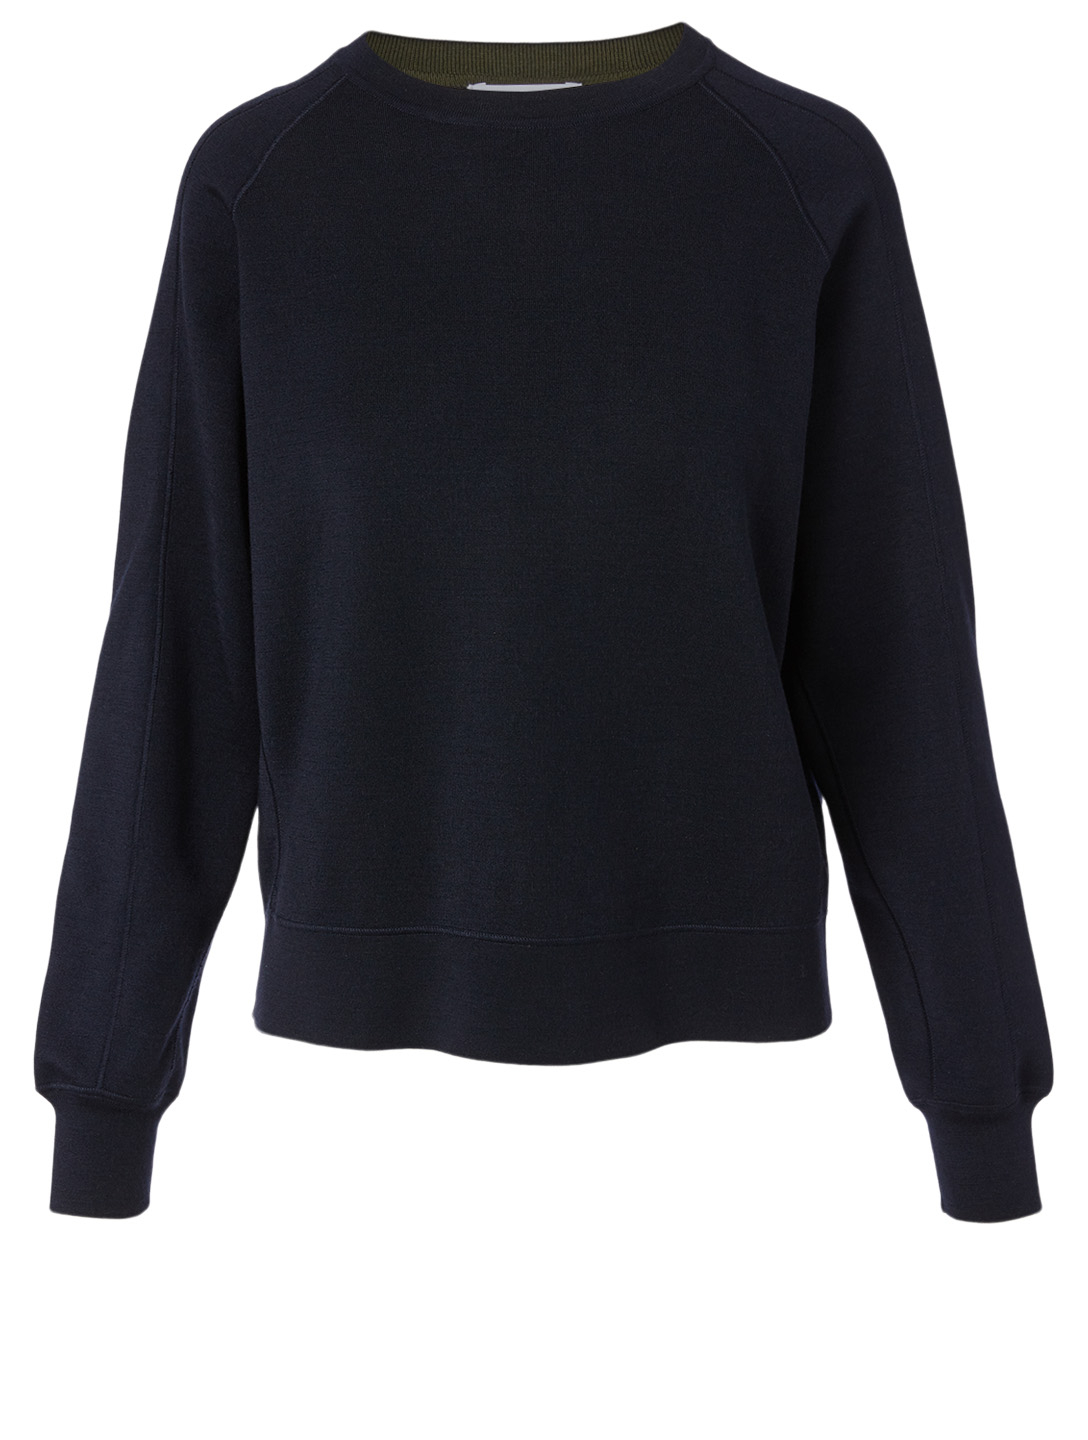 MAISON ULLENS Cashmere And Silk Sweater Women's Blue